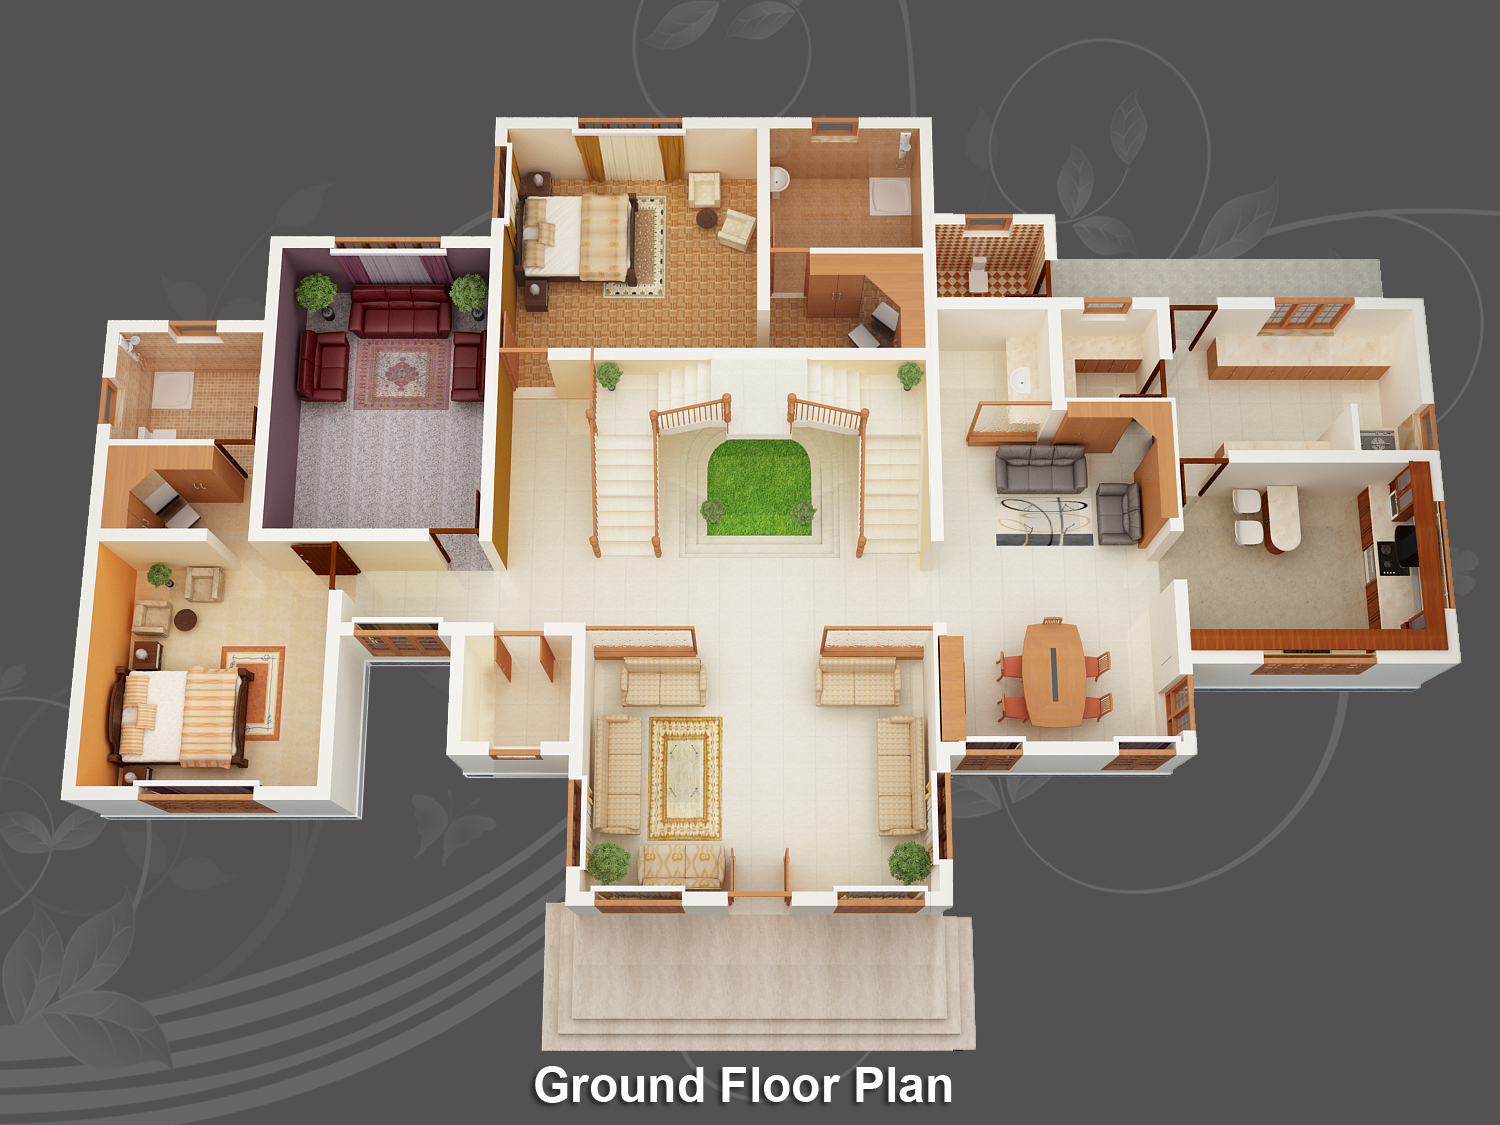 Evens construction pvt ltd 3d house plan 20 05 2011 for How to design 3d house plans